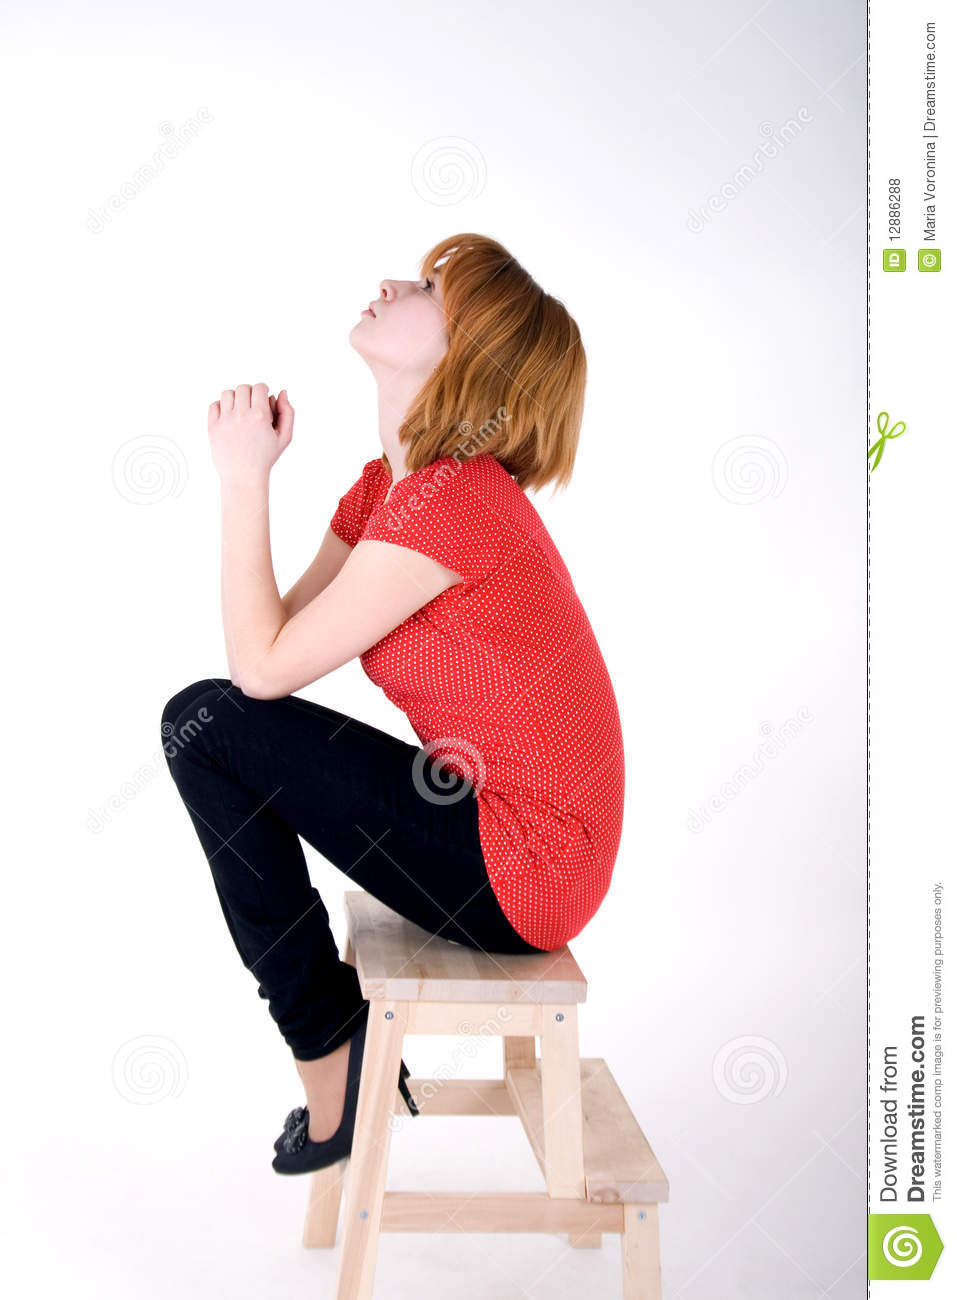 Pretty Girl Sitting On A Chair Stock Photo - Image: 12886288